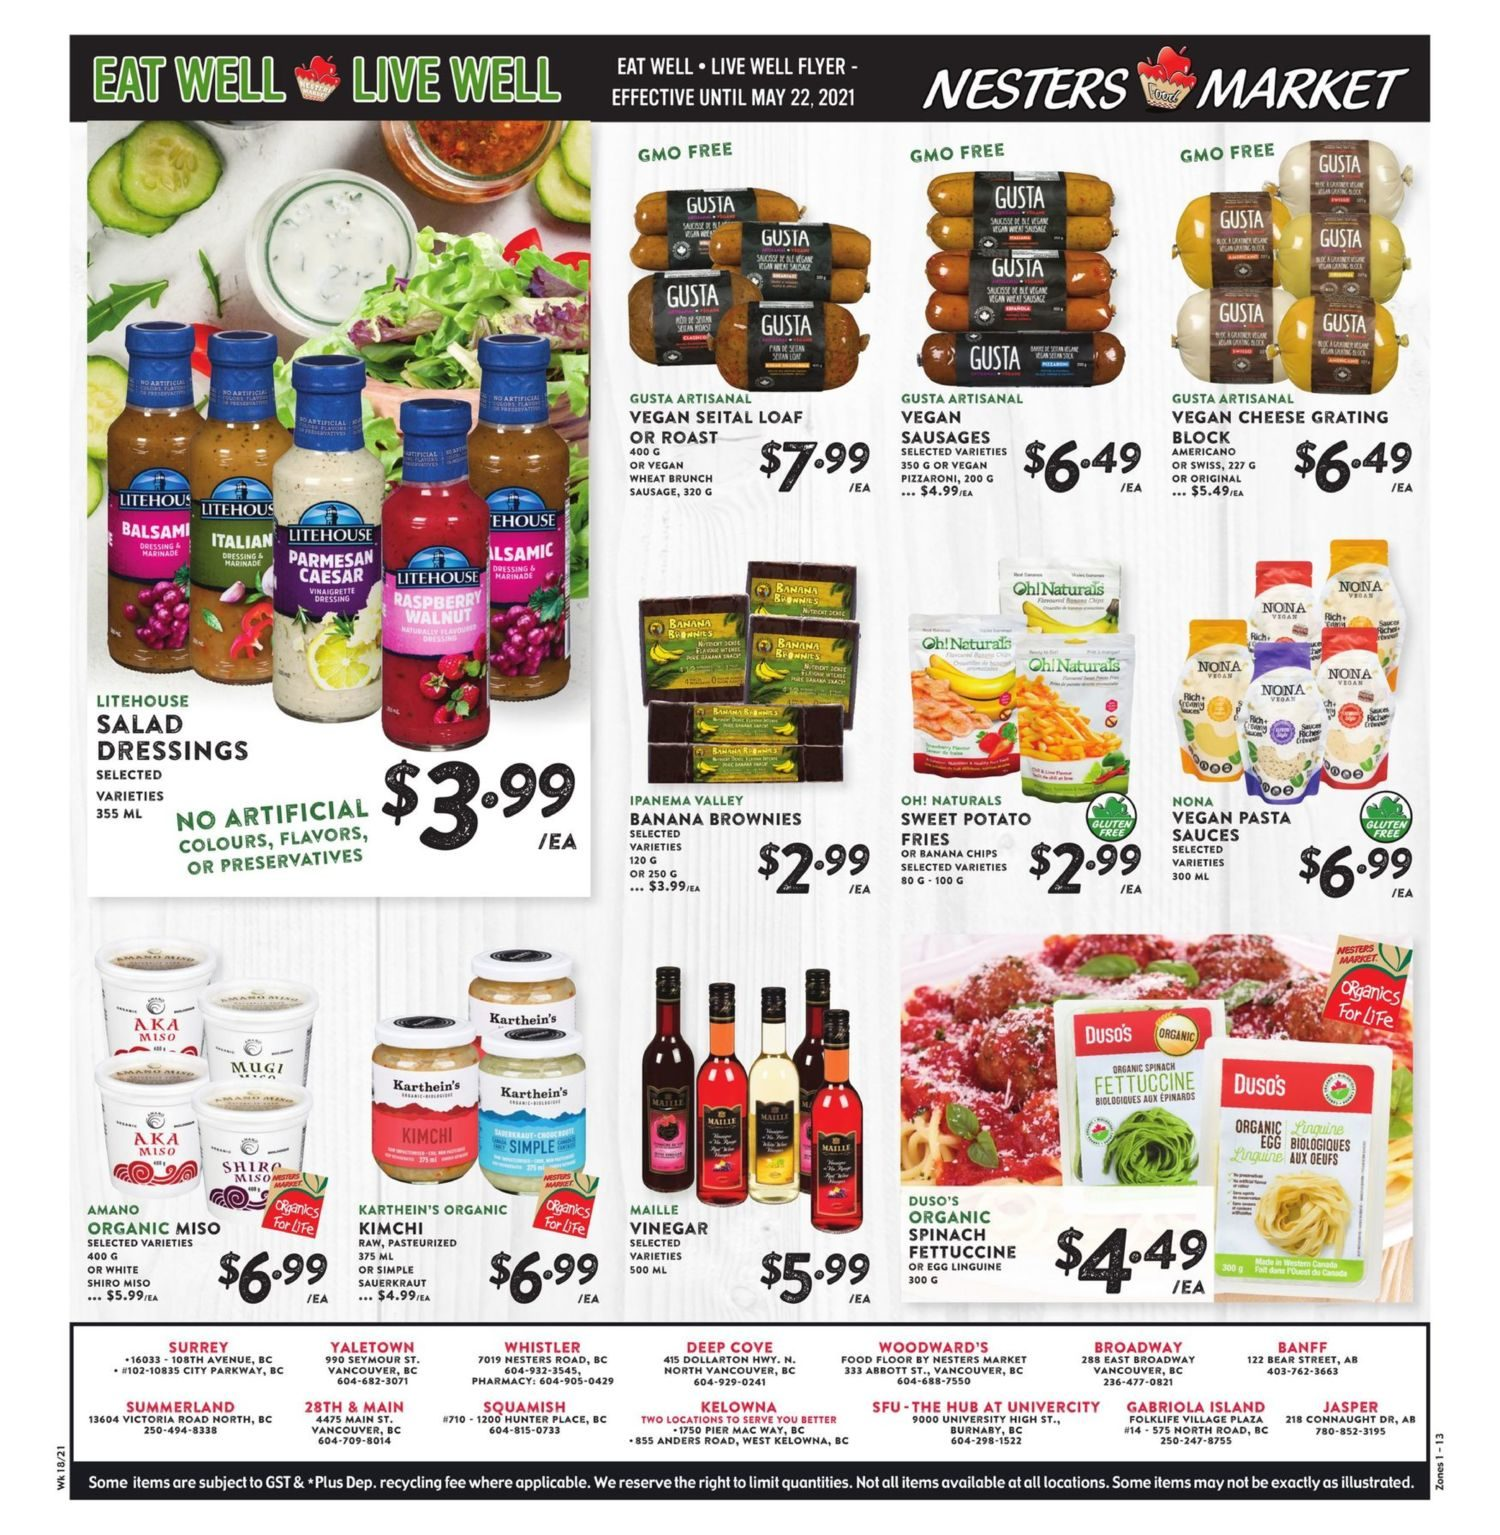 Nesters Market - Eat Well, Live Well - Page 8